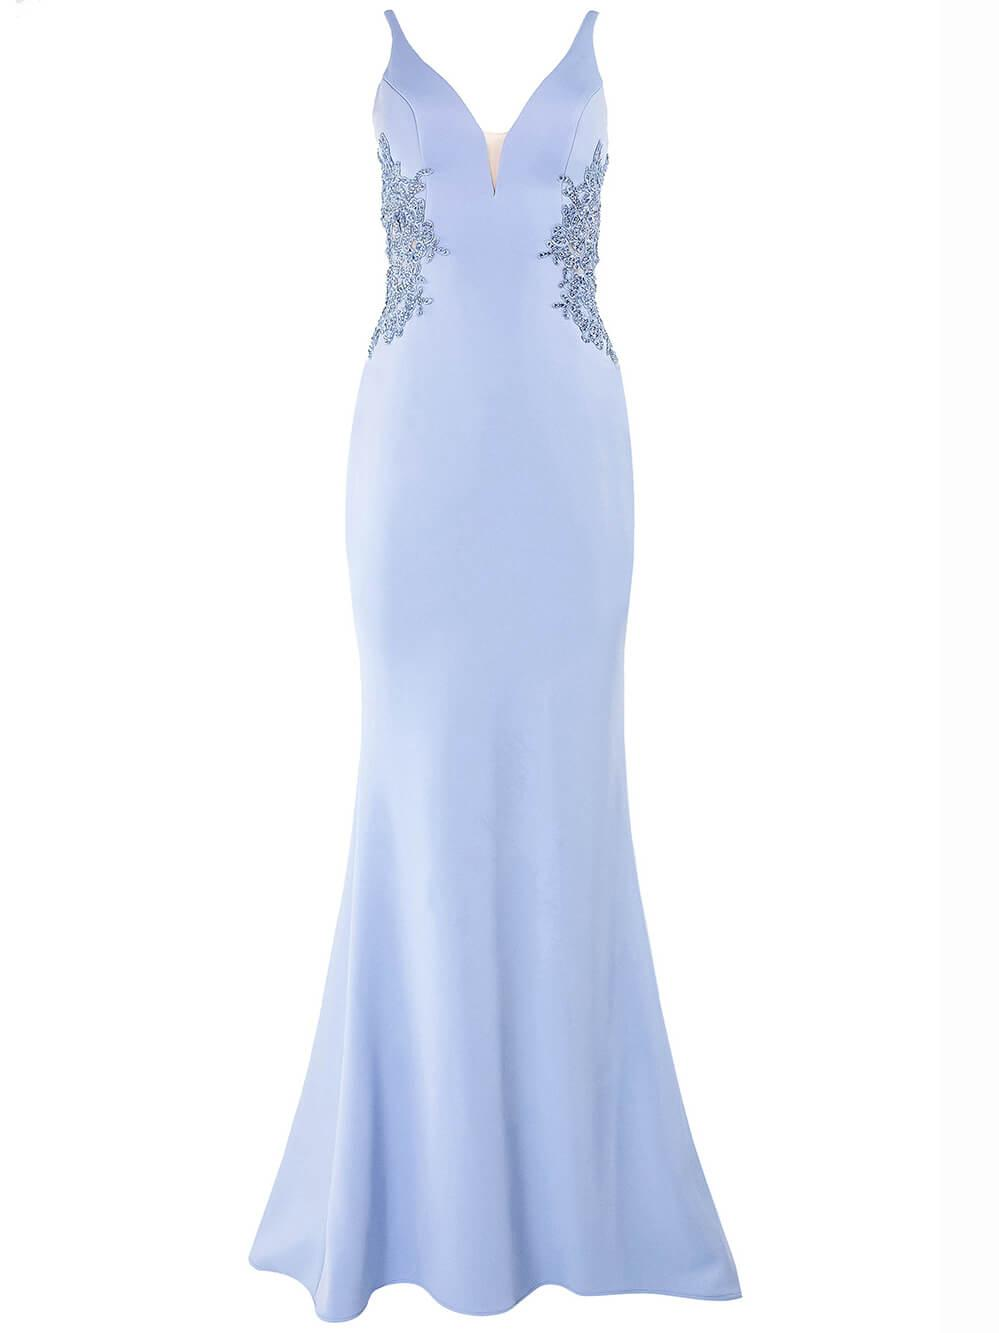 Neoprene Gown With Open Back Item # S10226